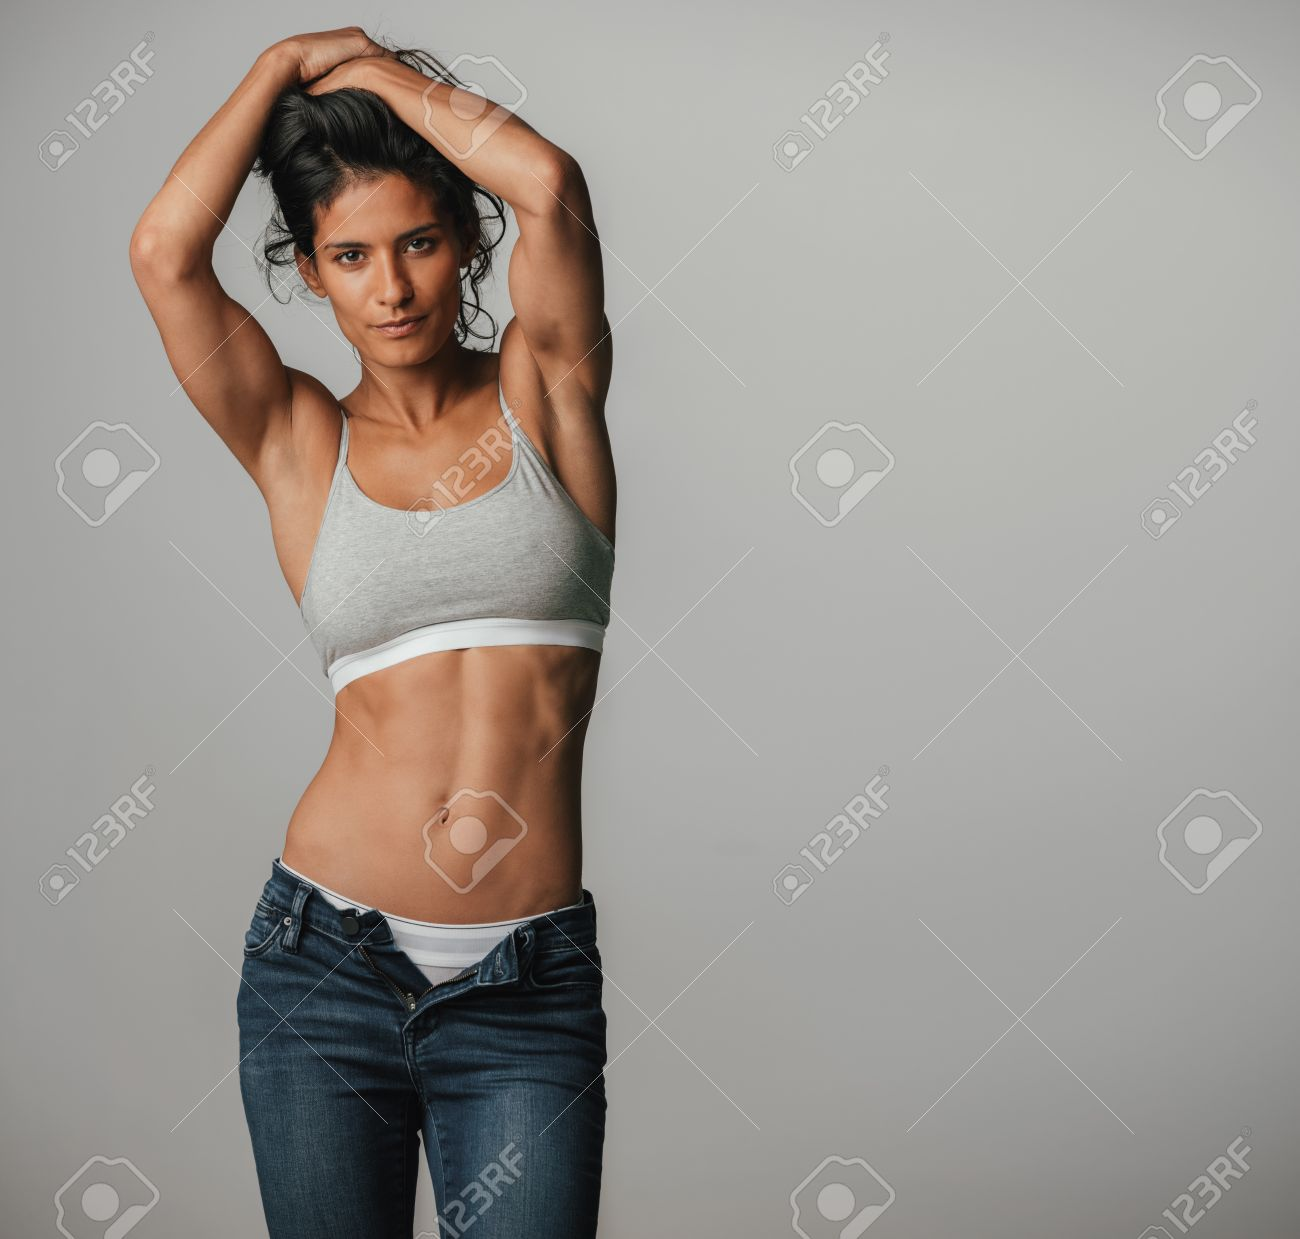 Powerful athletic woman poses with arms above her head while wearing halter top and jeans - 62294076